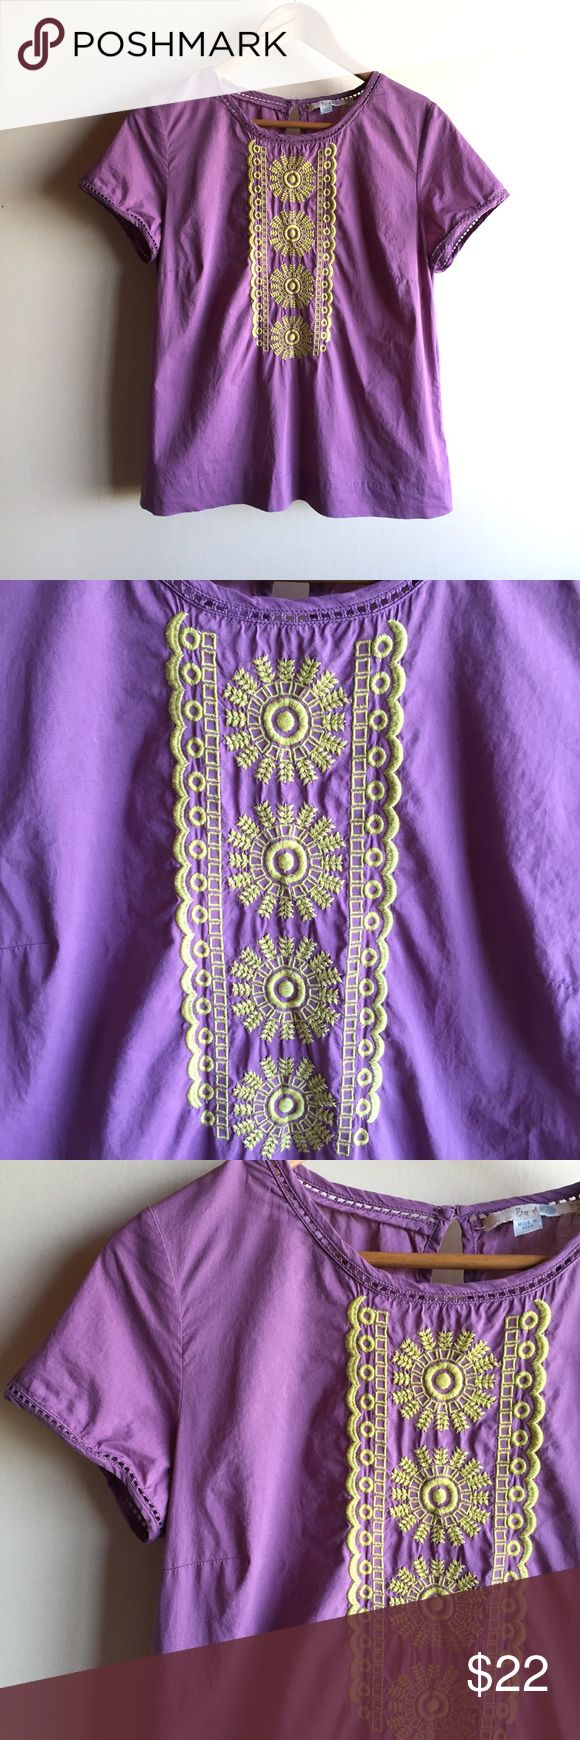 "Boden purple embroidered blouse Purple short sleeve top with golden yellow embroidery. 100% woven cotton. Great condition except for a couple of small picks in the fabric towards the bottom..see last pic. Measures 20"" from underarm to underarm and 25"" long. Boden Tops Blouses"